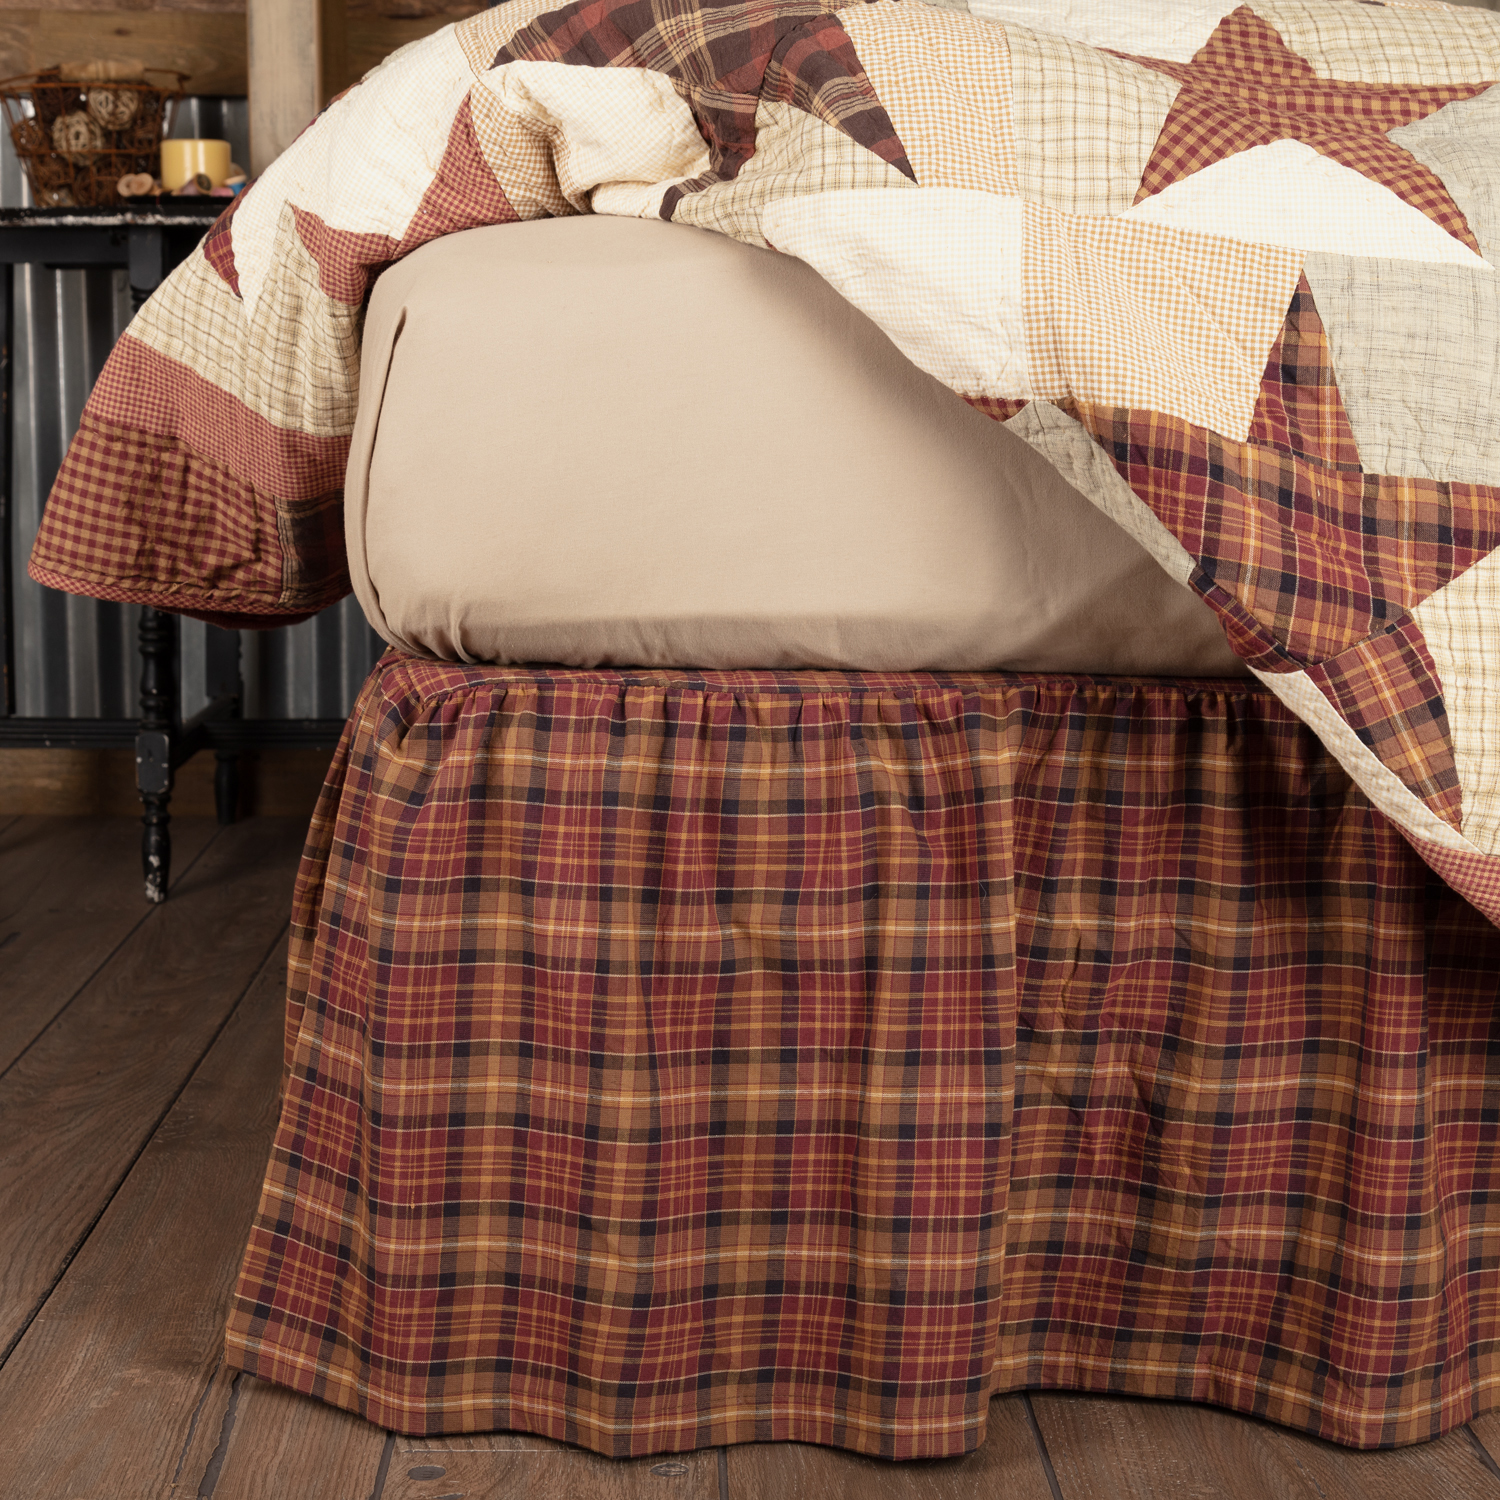 Abilene-Star-King-Bed-Skirt-78x80x16-image-2